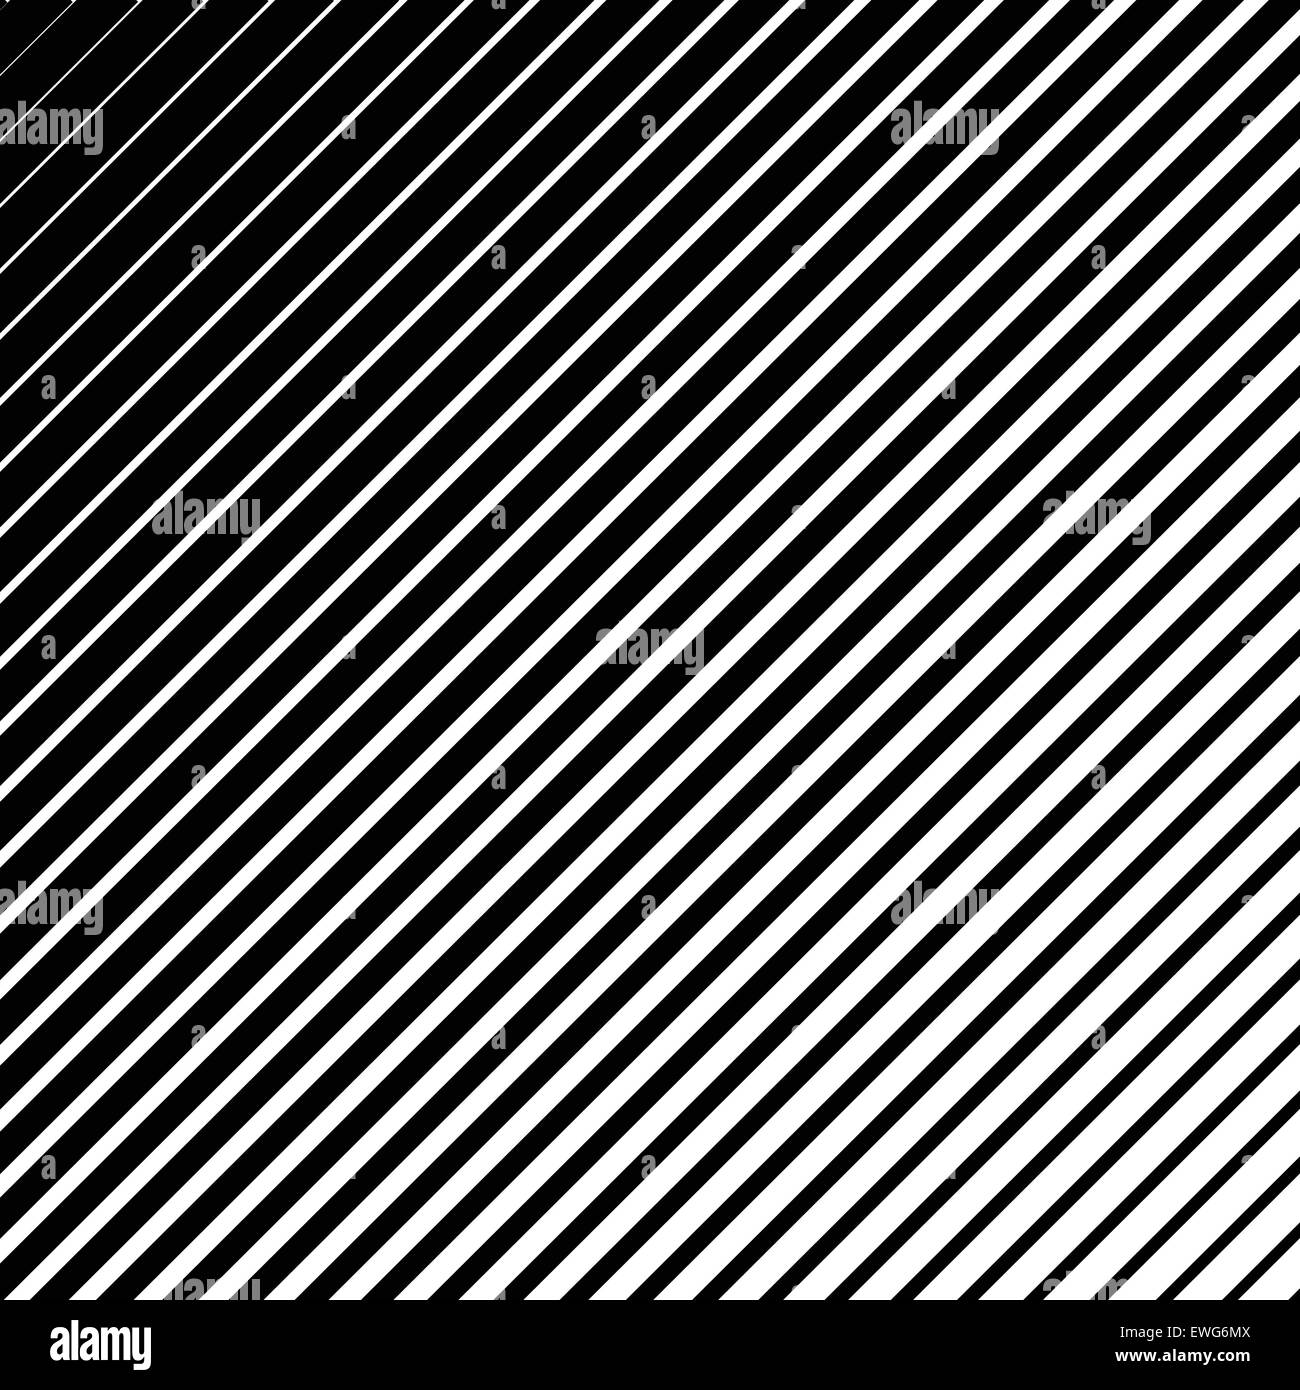 Line Texture Background : Lined pattern lines background oblique diagonal